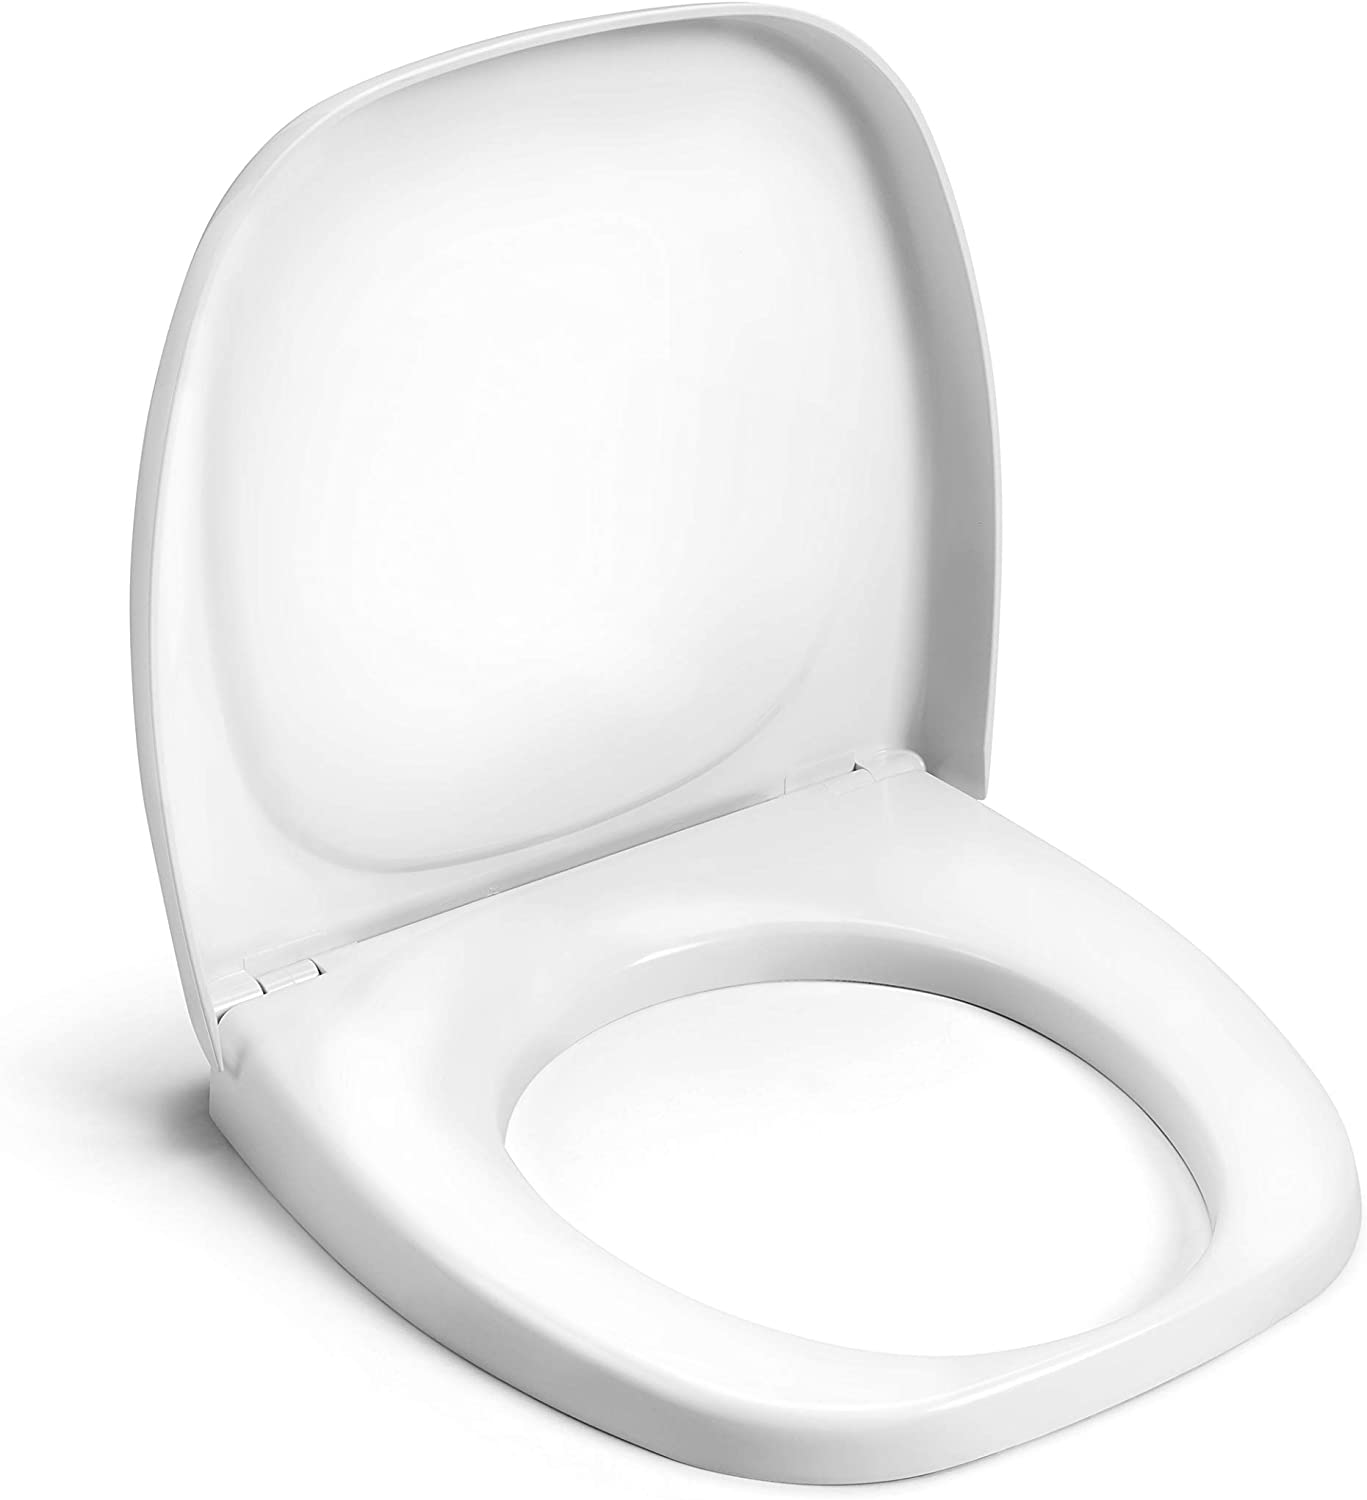 Thetford Fresh Up Sets For Thetford Toilets With Handle And Wheels Set Various Models For Mobile Camping Toilet Refresher Faecal Tank Lid Auto